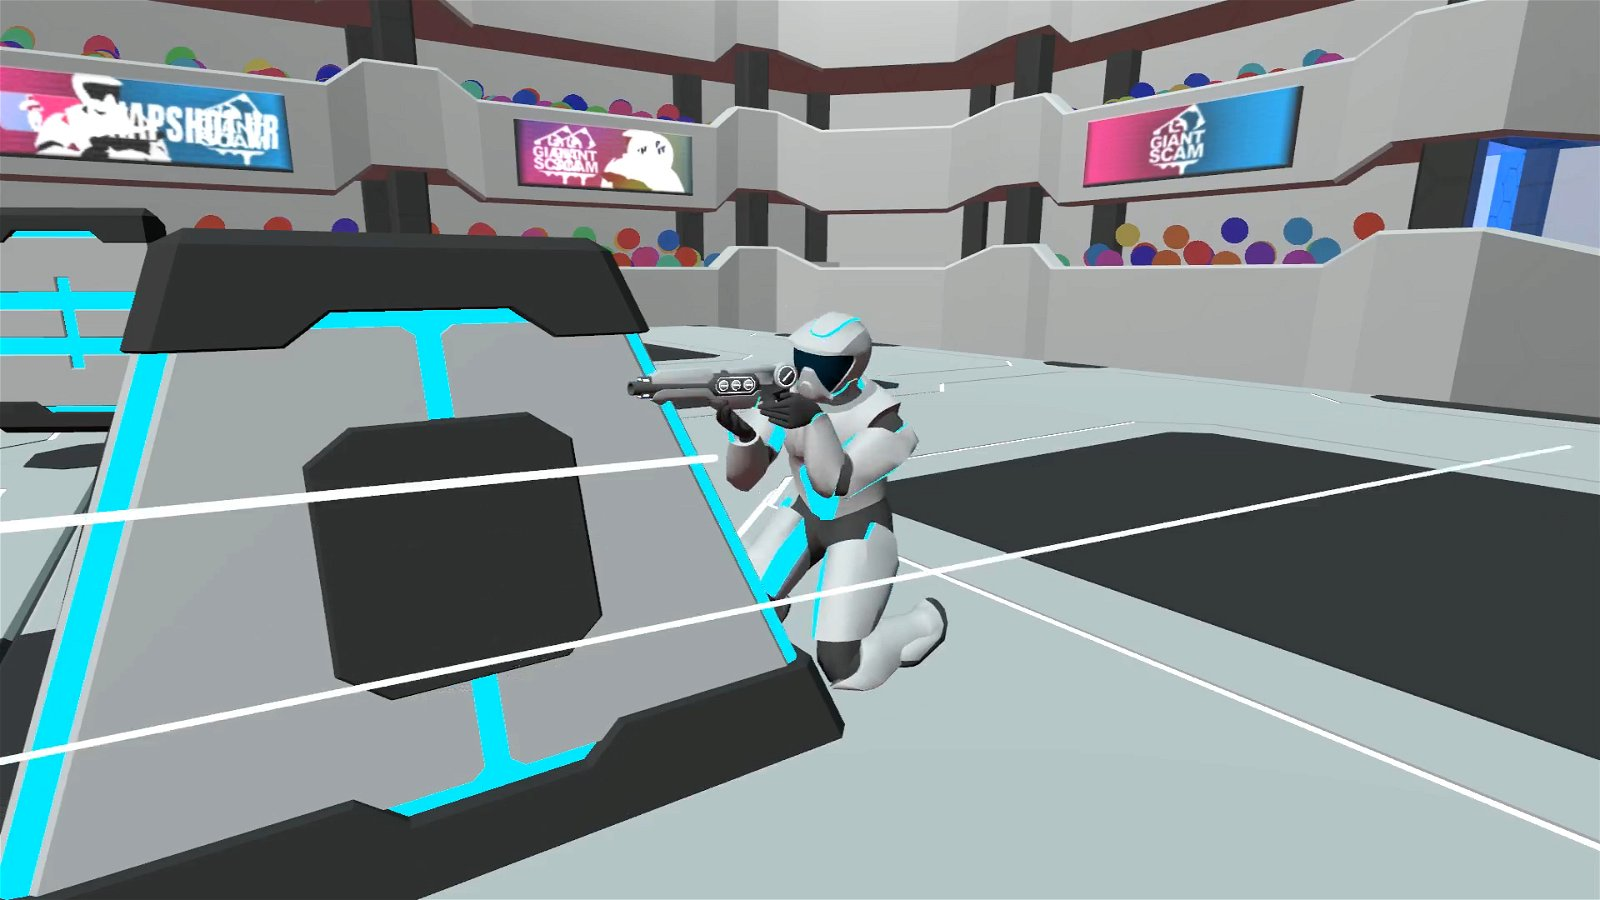 SnapShot VR Brings High Level Paint-balling to PC 2